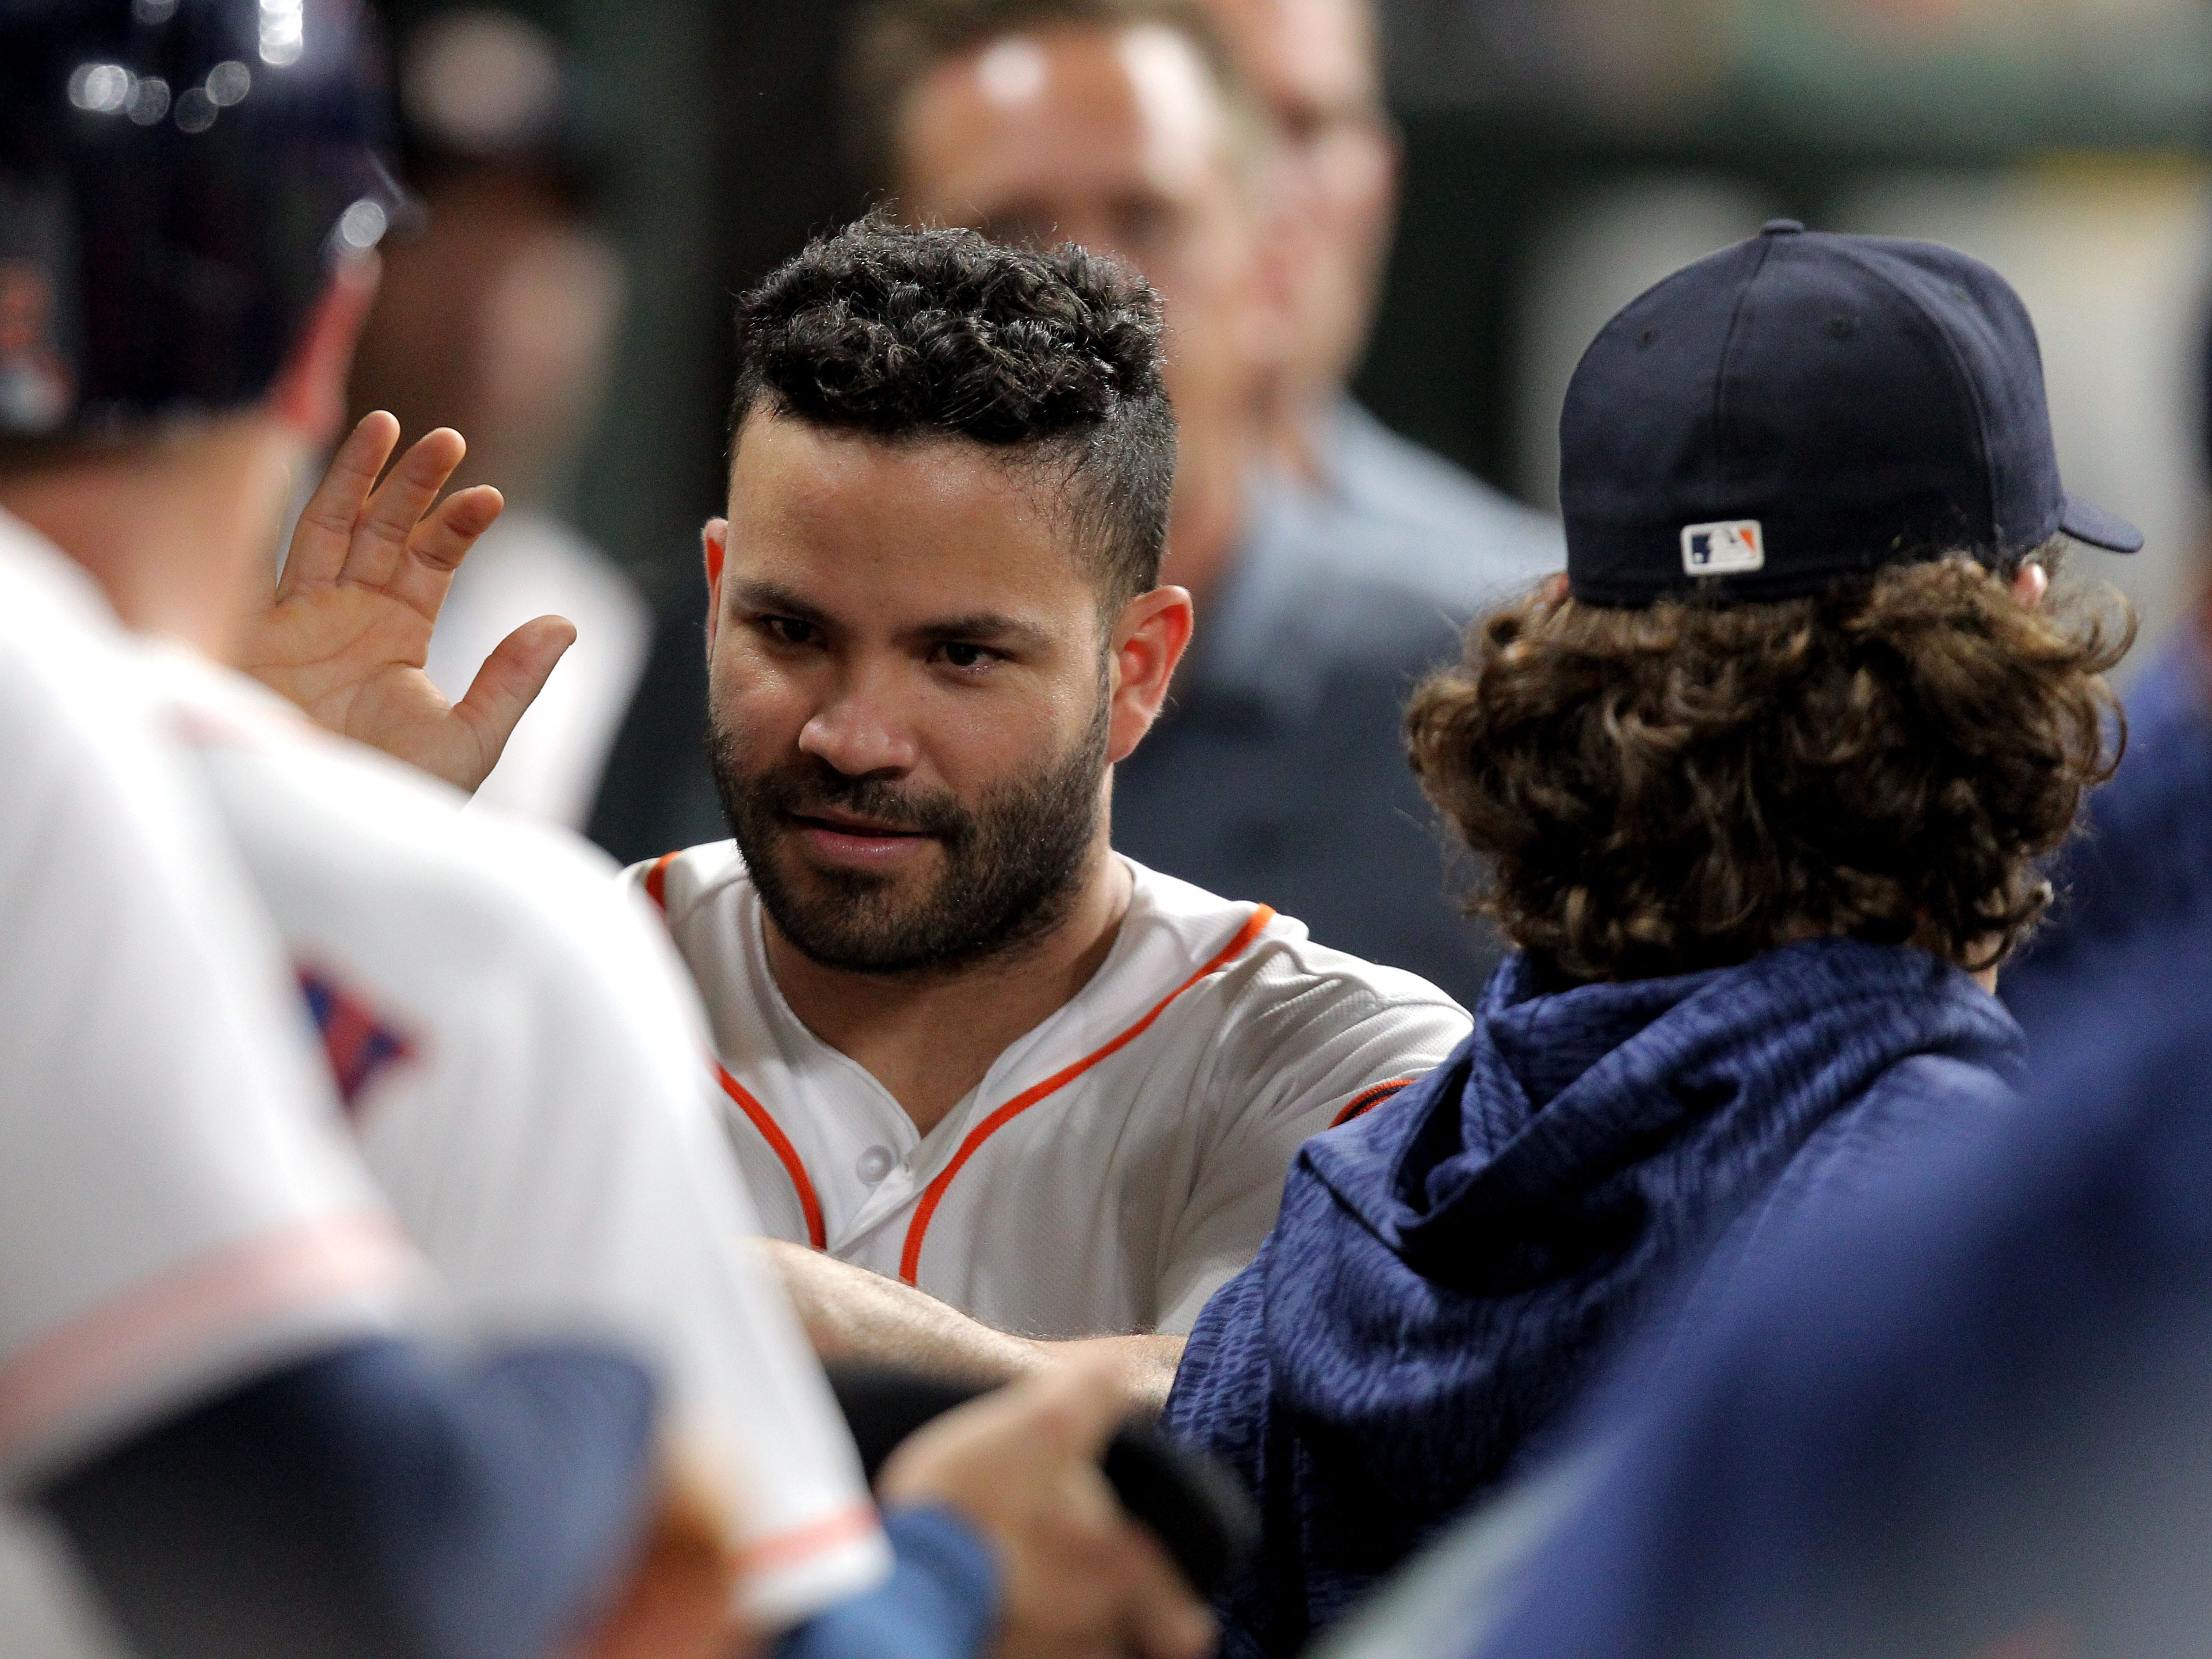 Sep 15, 2018; Houston, TX, USA; Houston Astros second baseman Jose Altuve (27) is greeted in the dugout after scoring a run against the Arizona Diamondbacks during the sixth inning at Minute Maid Park. Mandatory Credit: Erik Williams-USA TODAY Sports